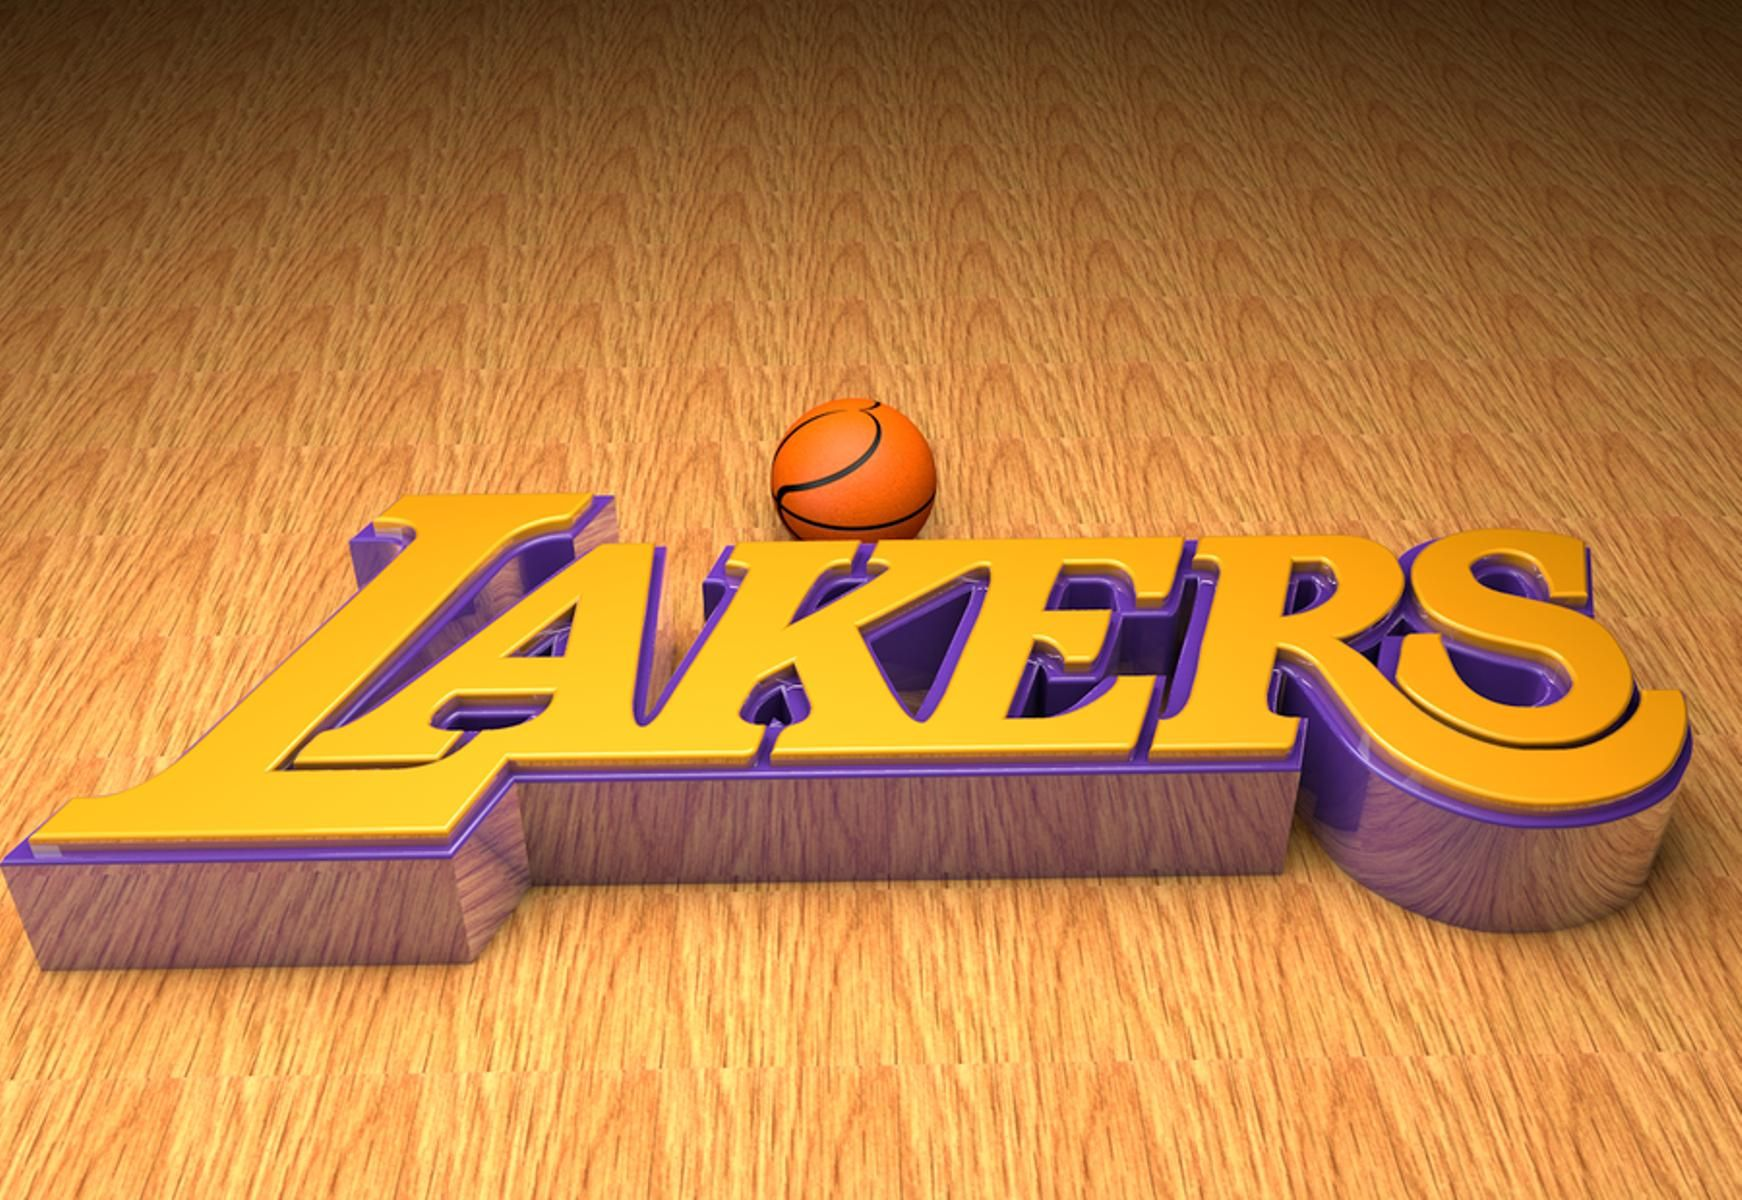 Lakers Wallpaper 3d Live Wallpaper Hd Lakers Wallpaper Los Angeles Lakers Logo Los Angeles Lakers